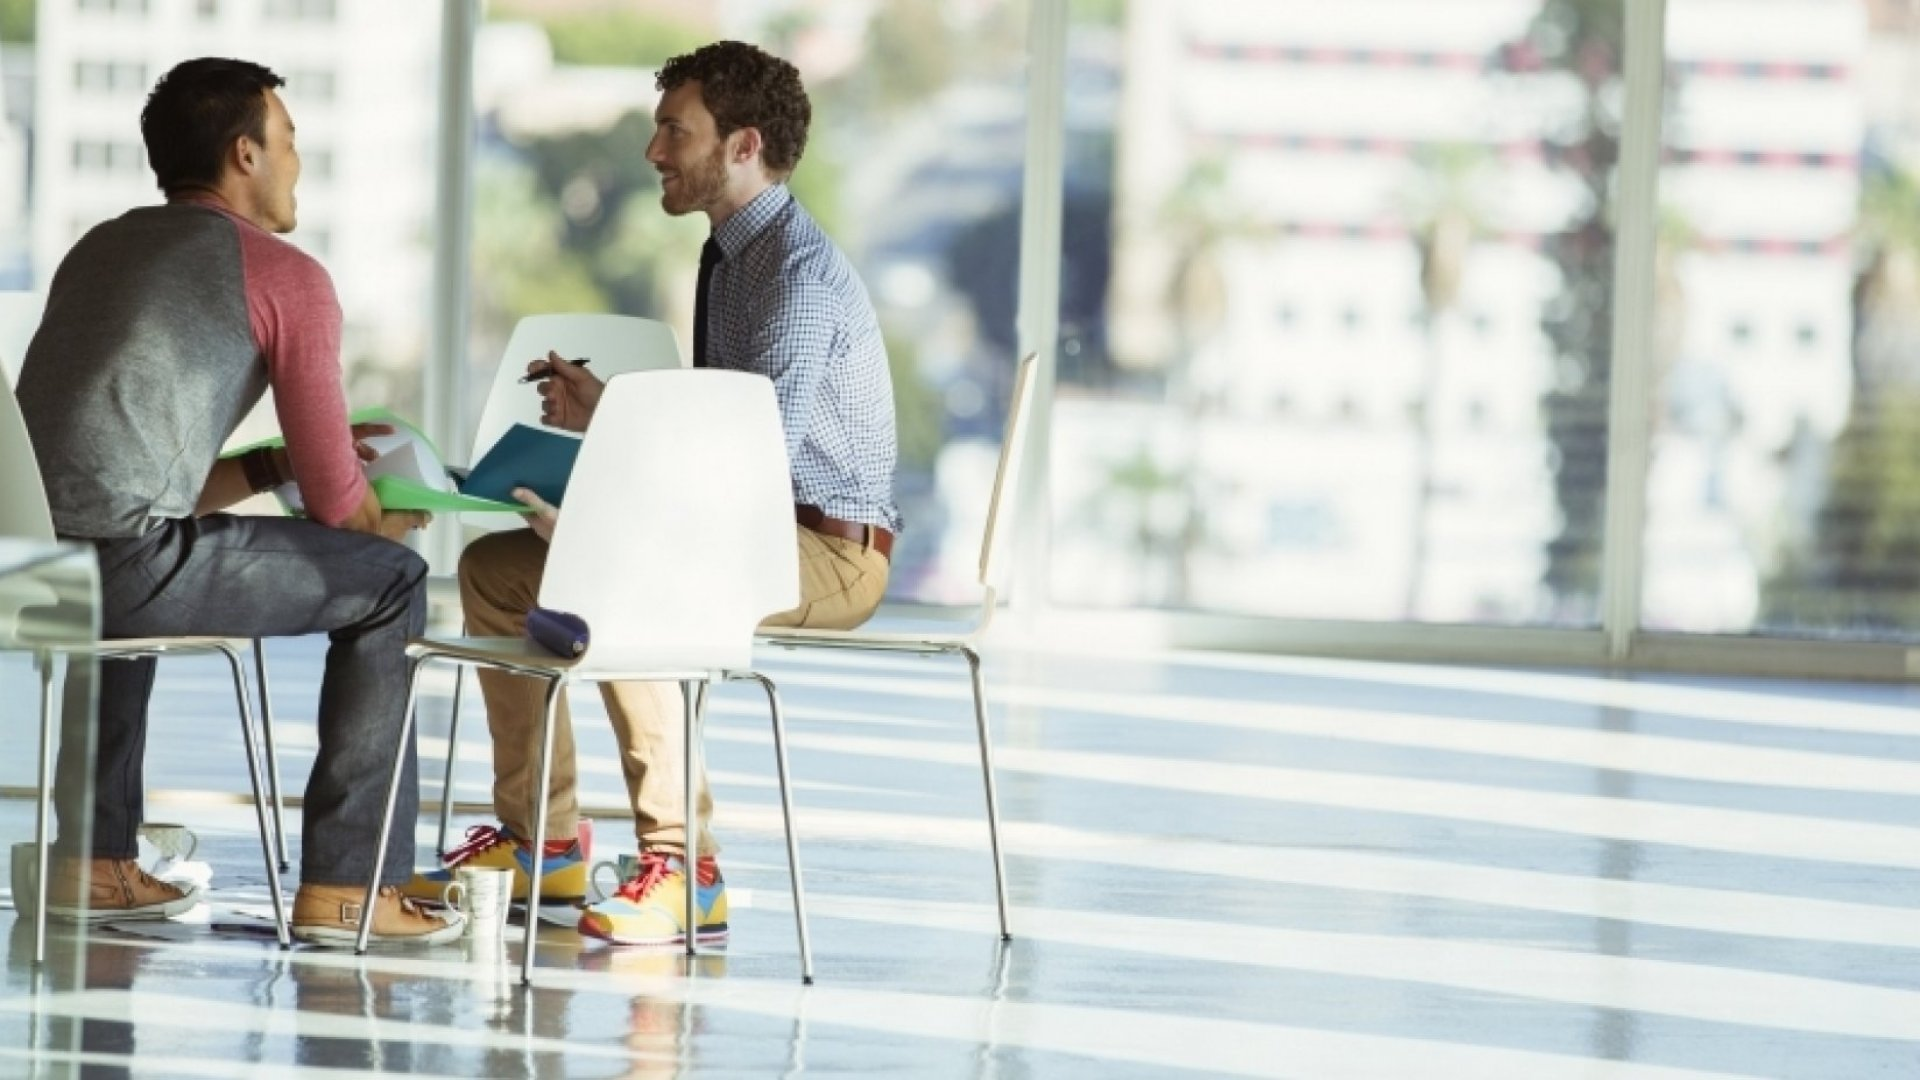 8 Brilliant Ways to Make an Awkward Conversation More Comfortable